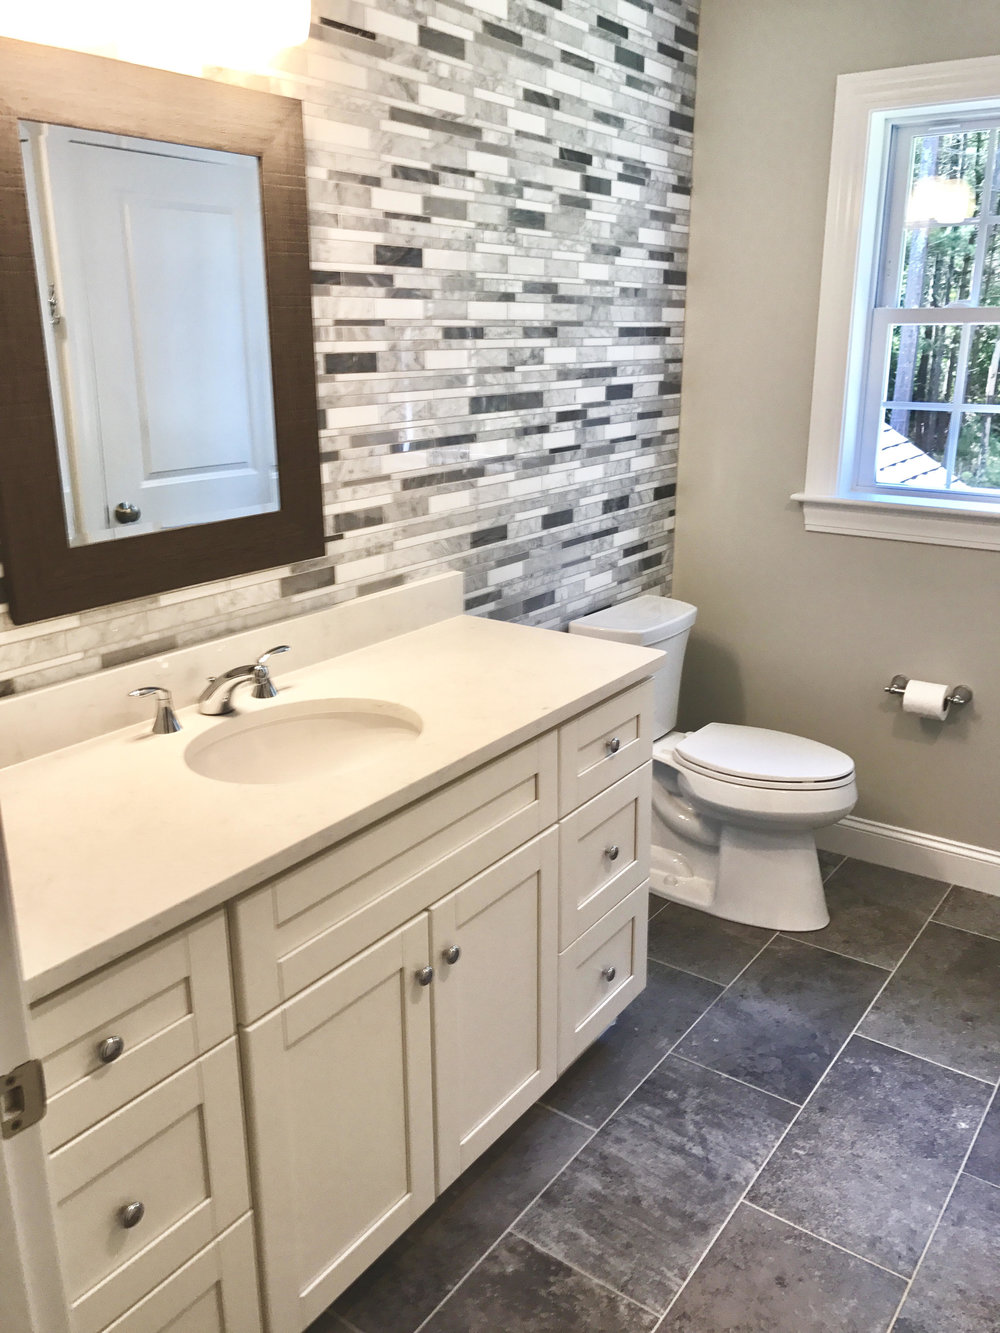 35 laurel guest bath upstairs 9-5-18.jpg